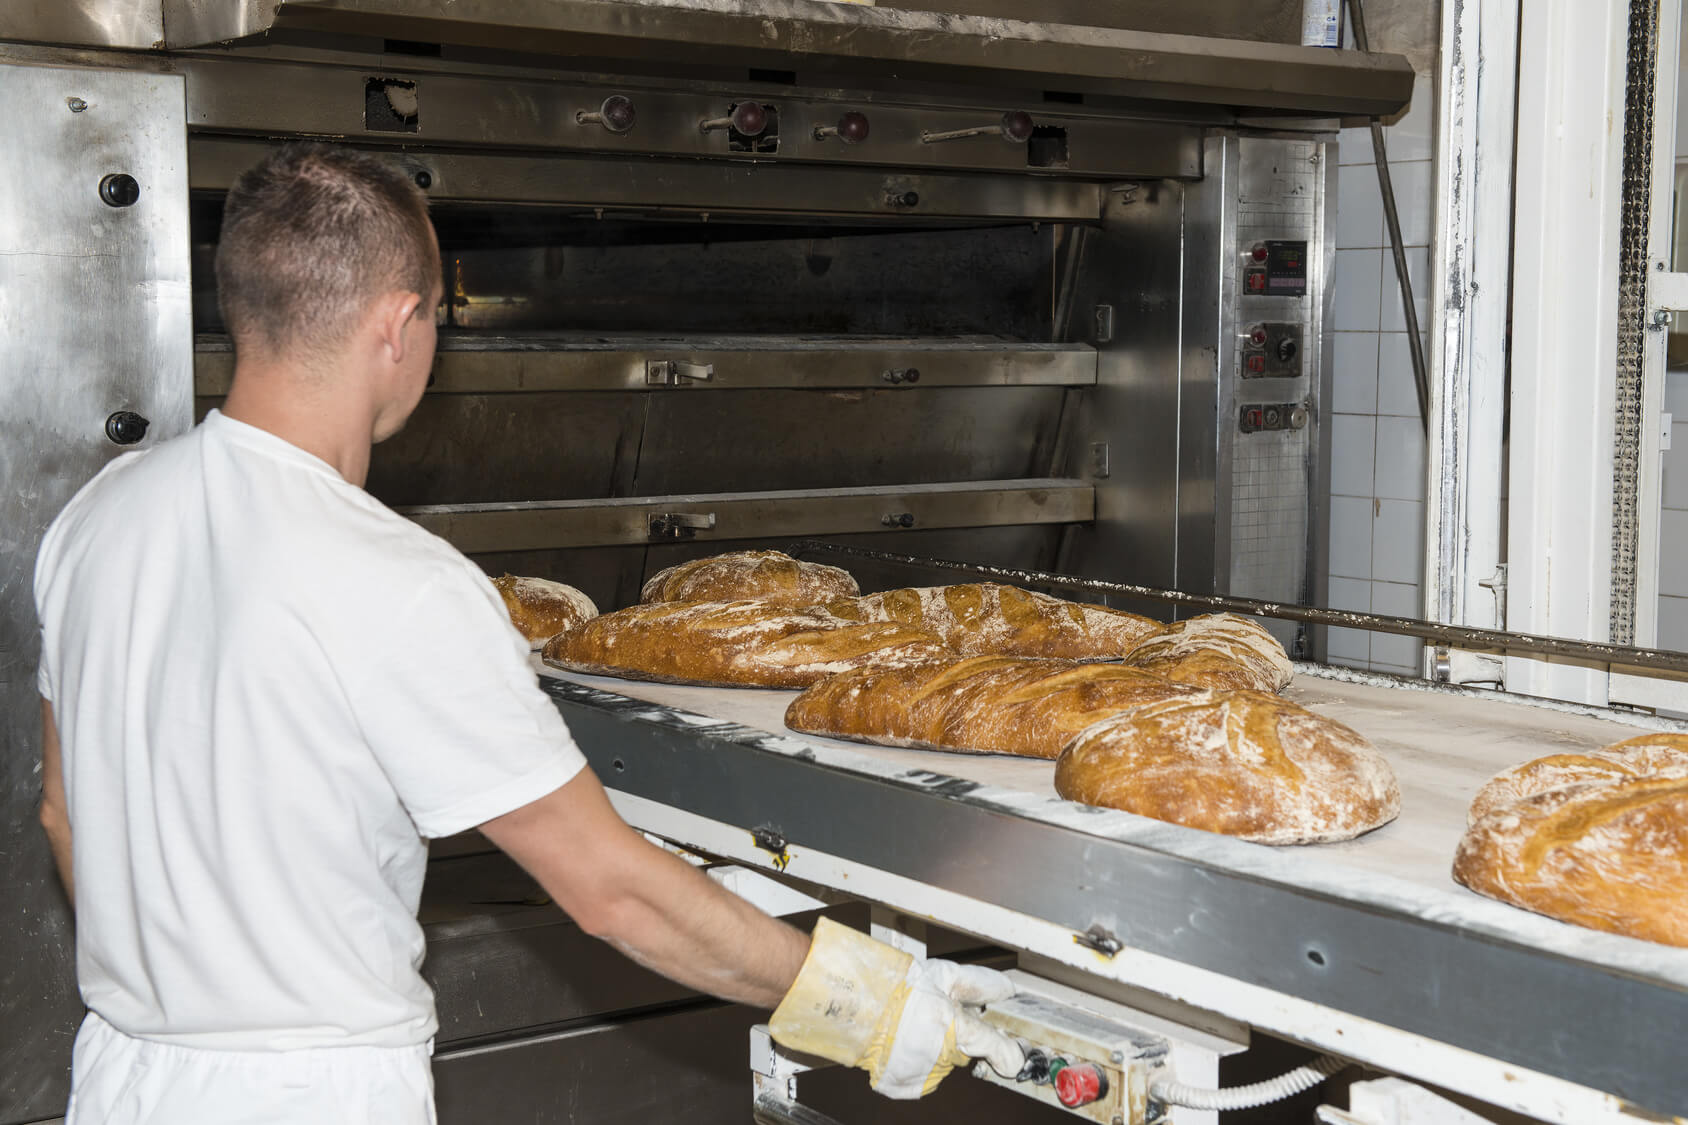 Commercial oven cooking bread P & S Engineering .jpg